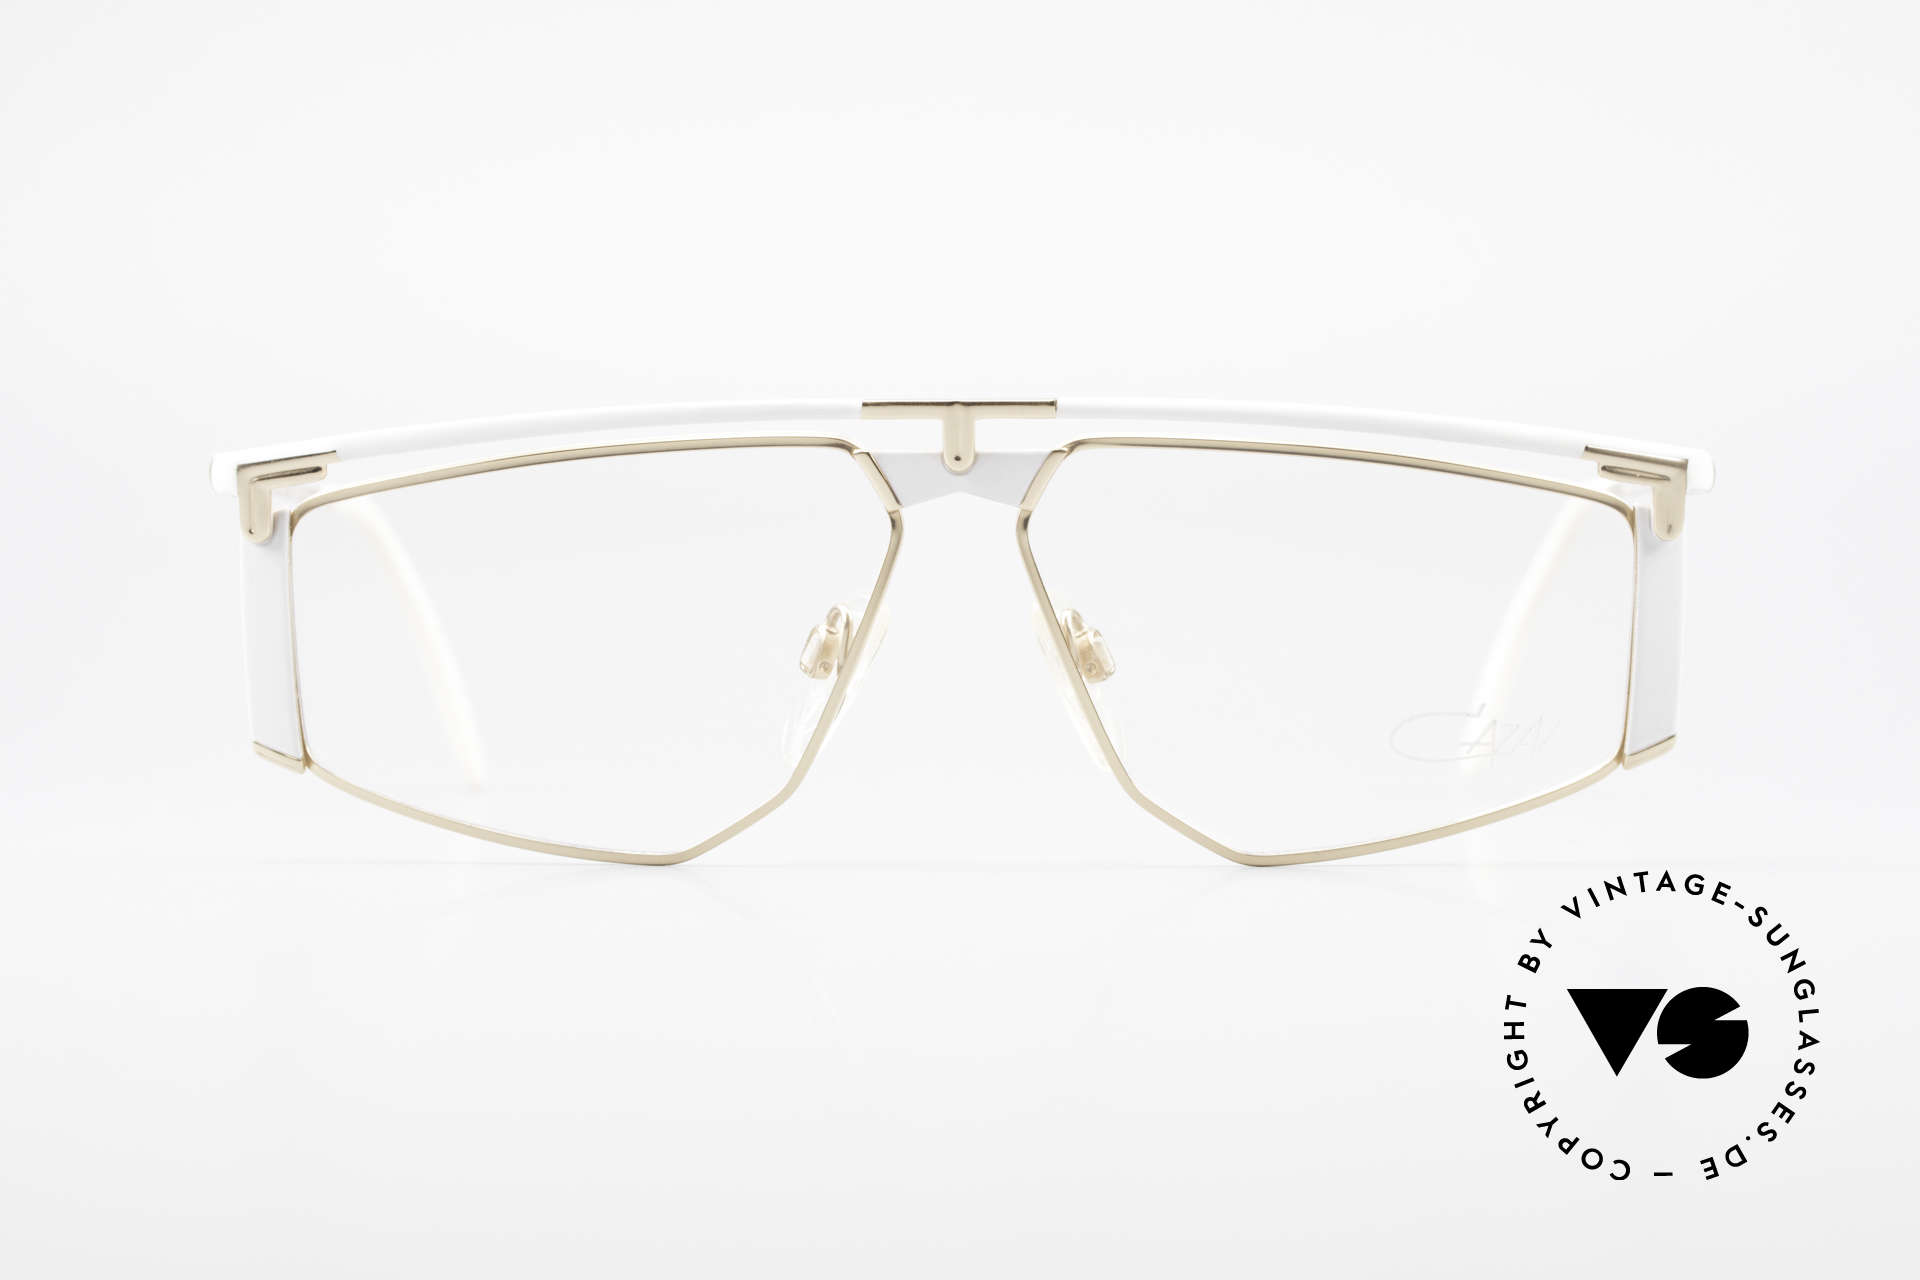 Cazal 235 Titanium Vintage Cazal Frame, 1. class wearing comfort thanks to lightweight material, Made for Men and Women